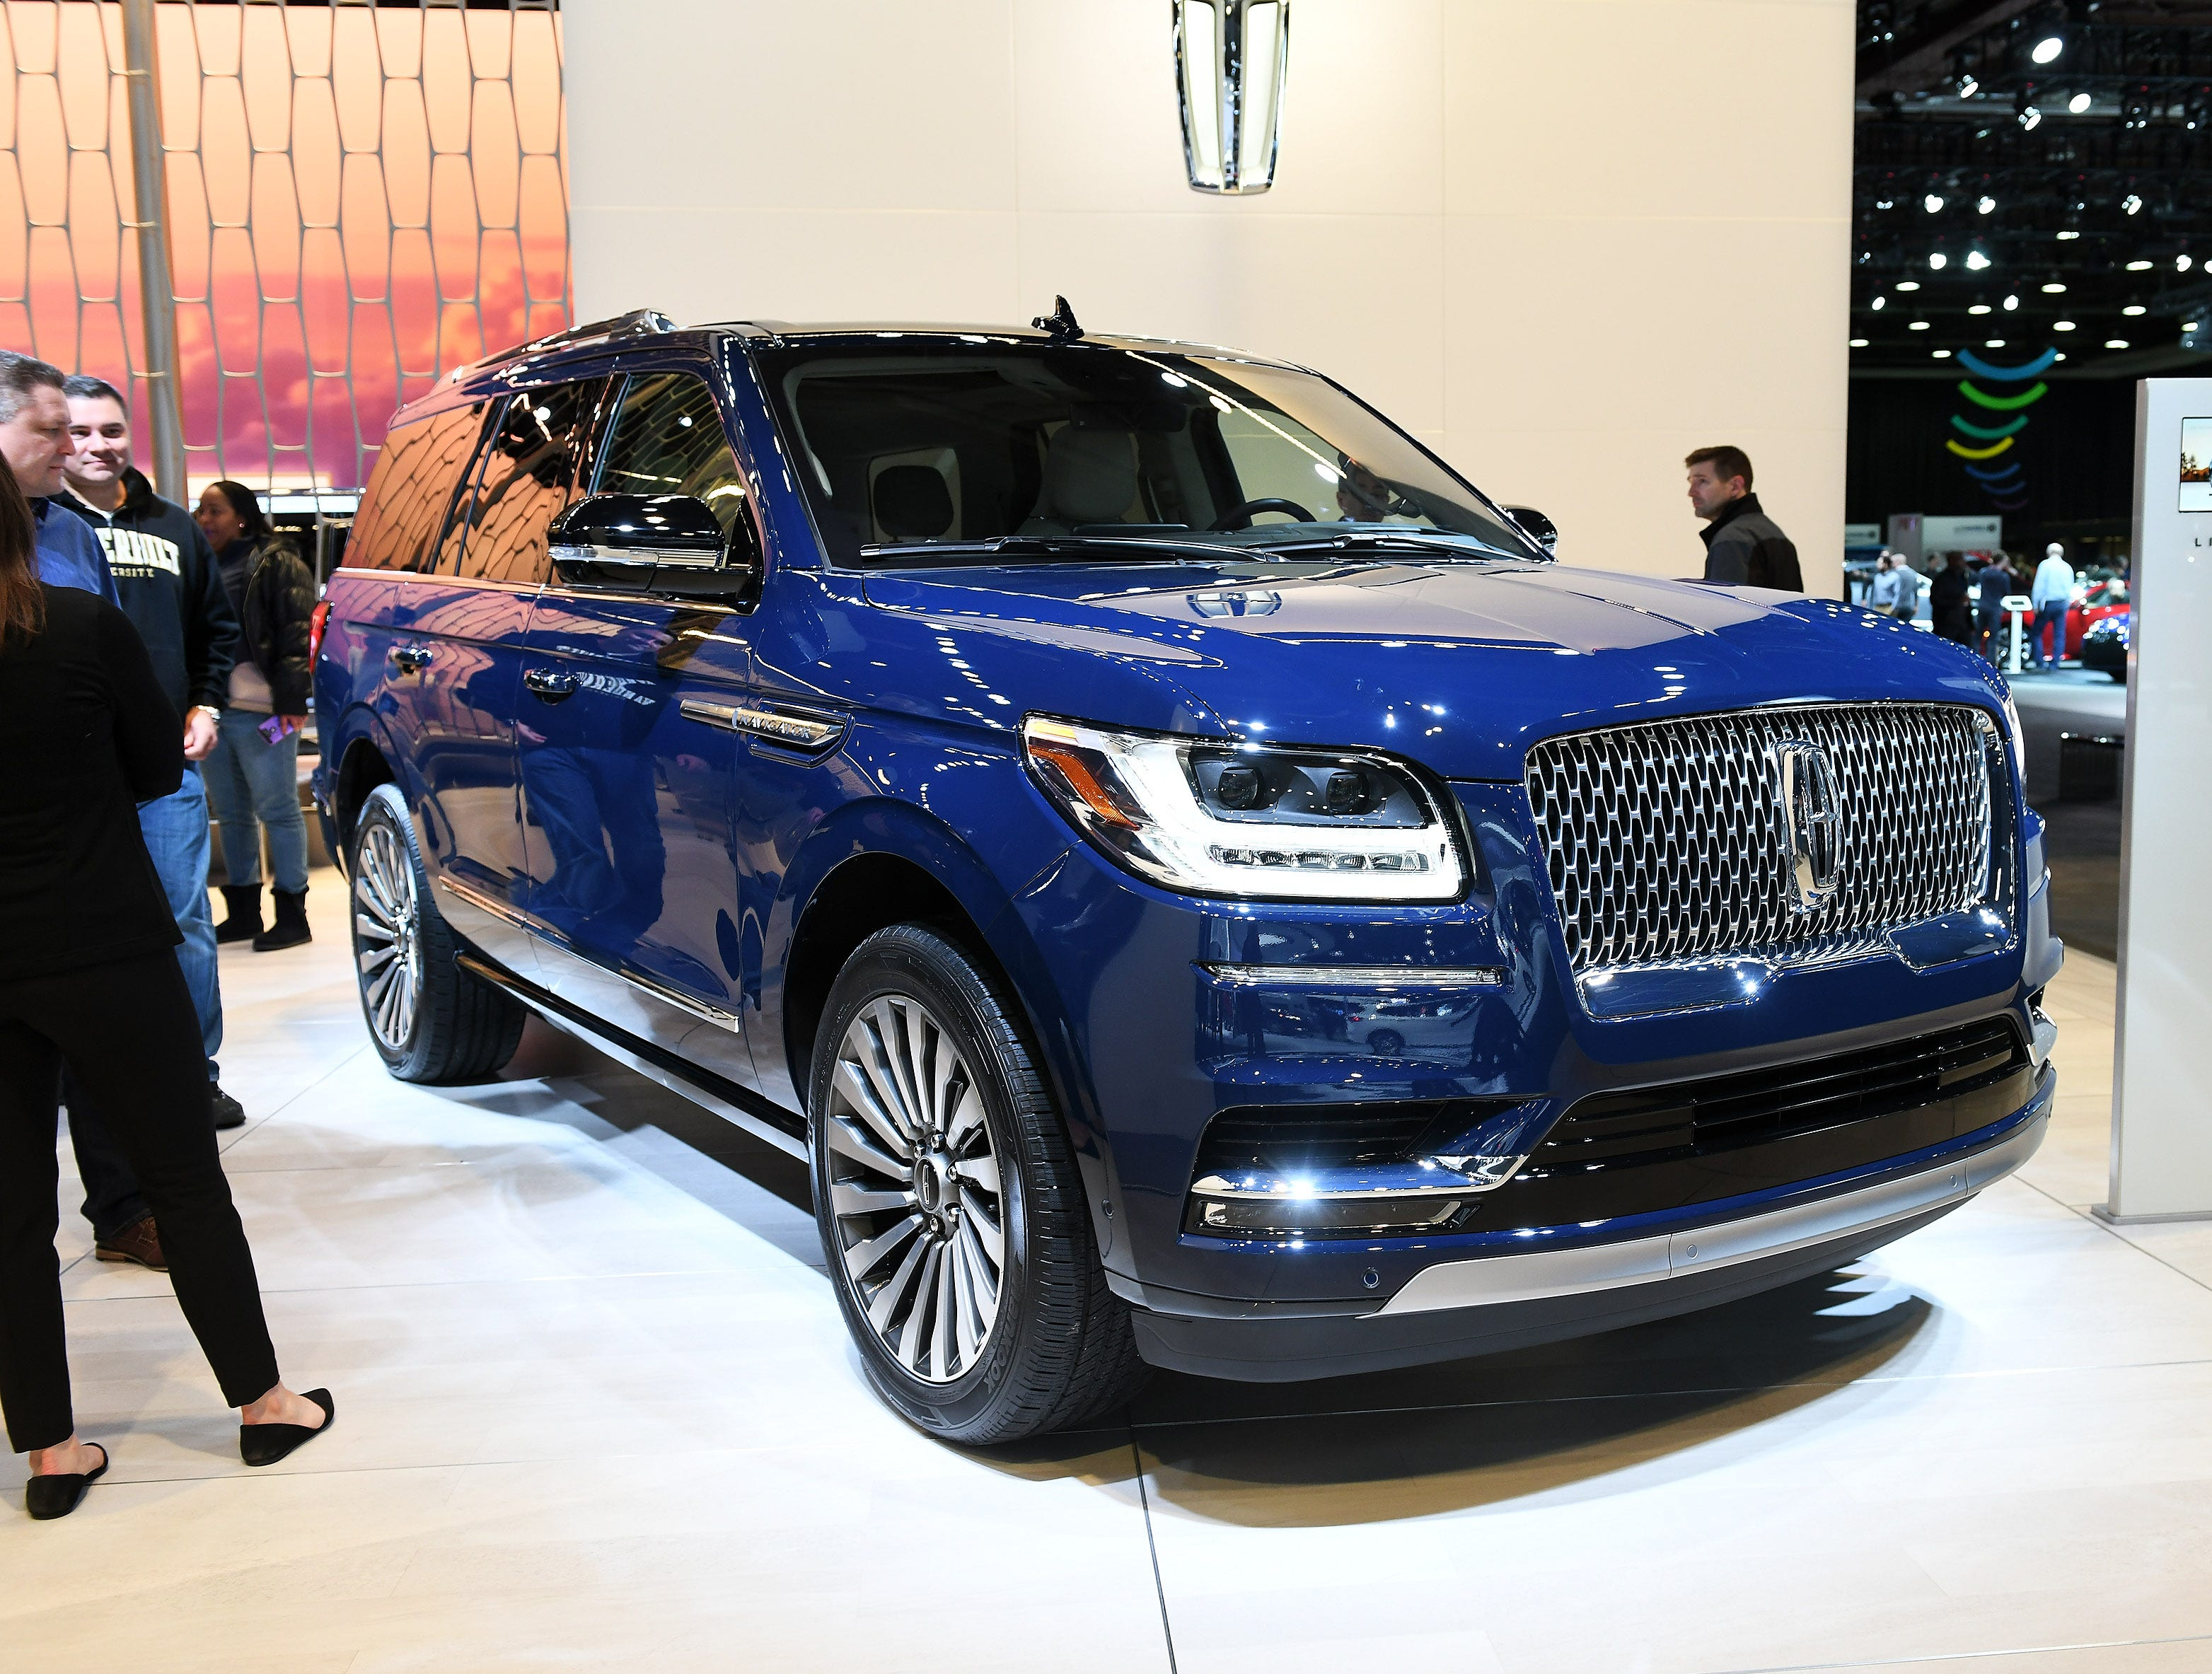 Best Road-Trip Ride: Lincoln Navigator